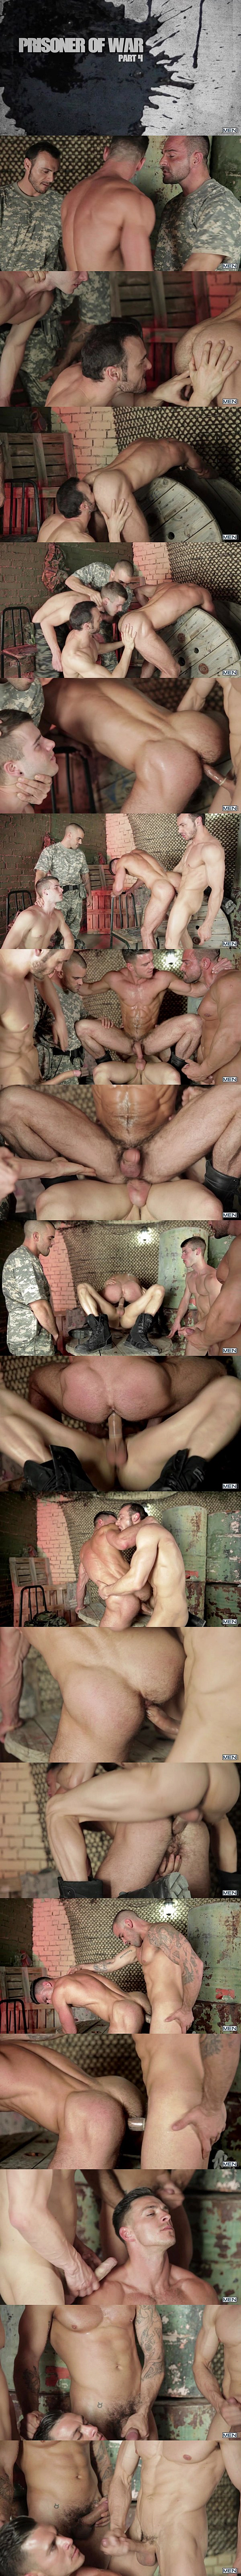 A sneak peek of Damien Crosse, Gabriel Vanderloo, Alex Brando and Allen King fucking Paddy O'Brian in Part 4 of Prisoner of War at Men 01